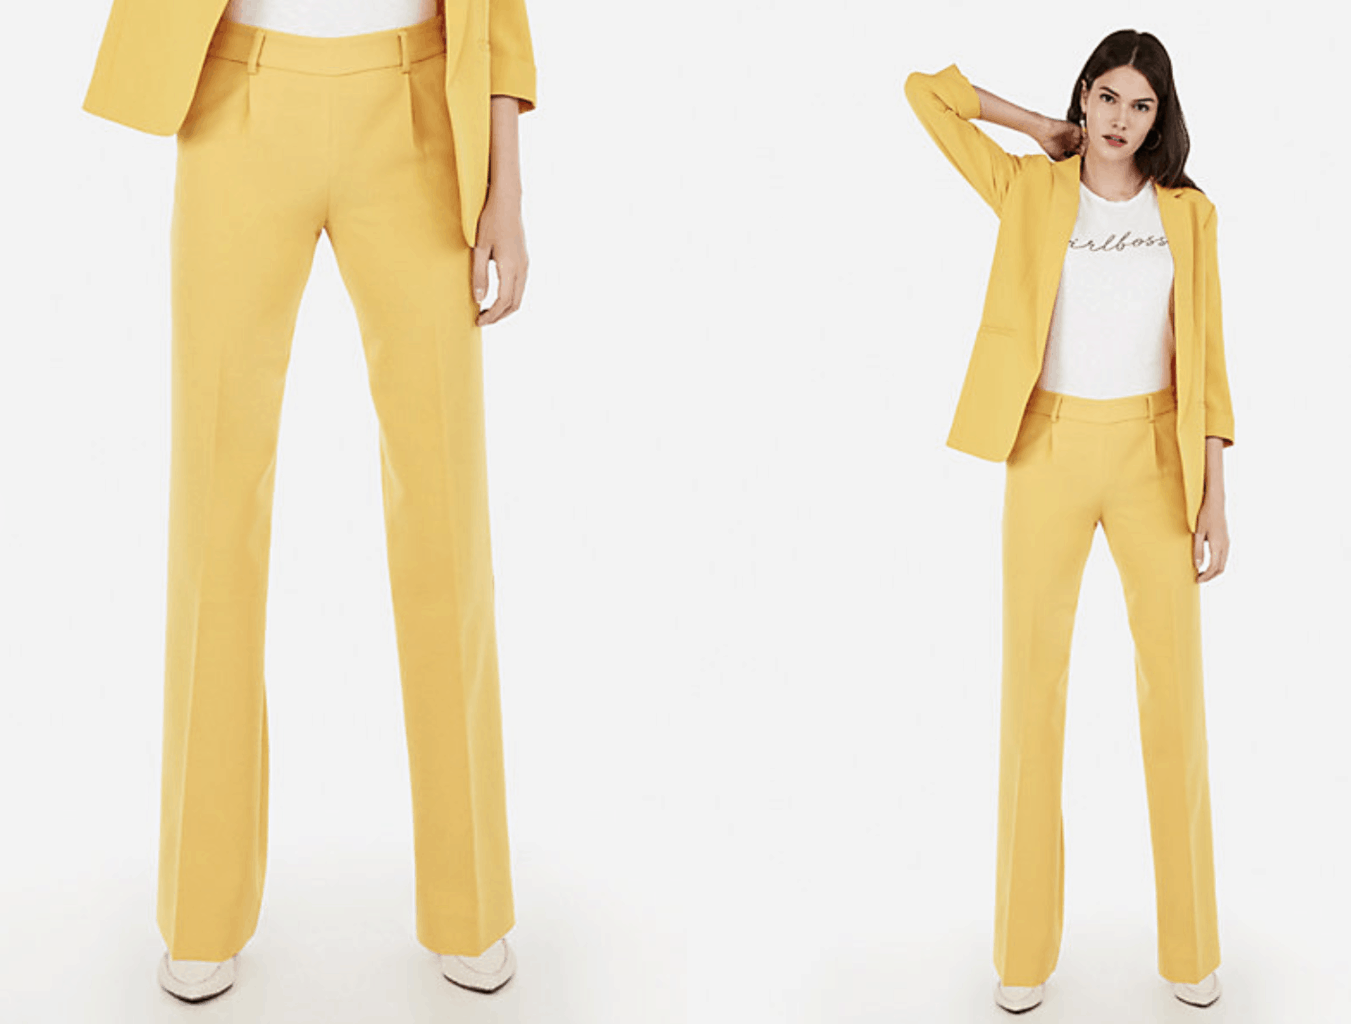 model wearing yellow wide leg pants and blazer with white tee shirt